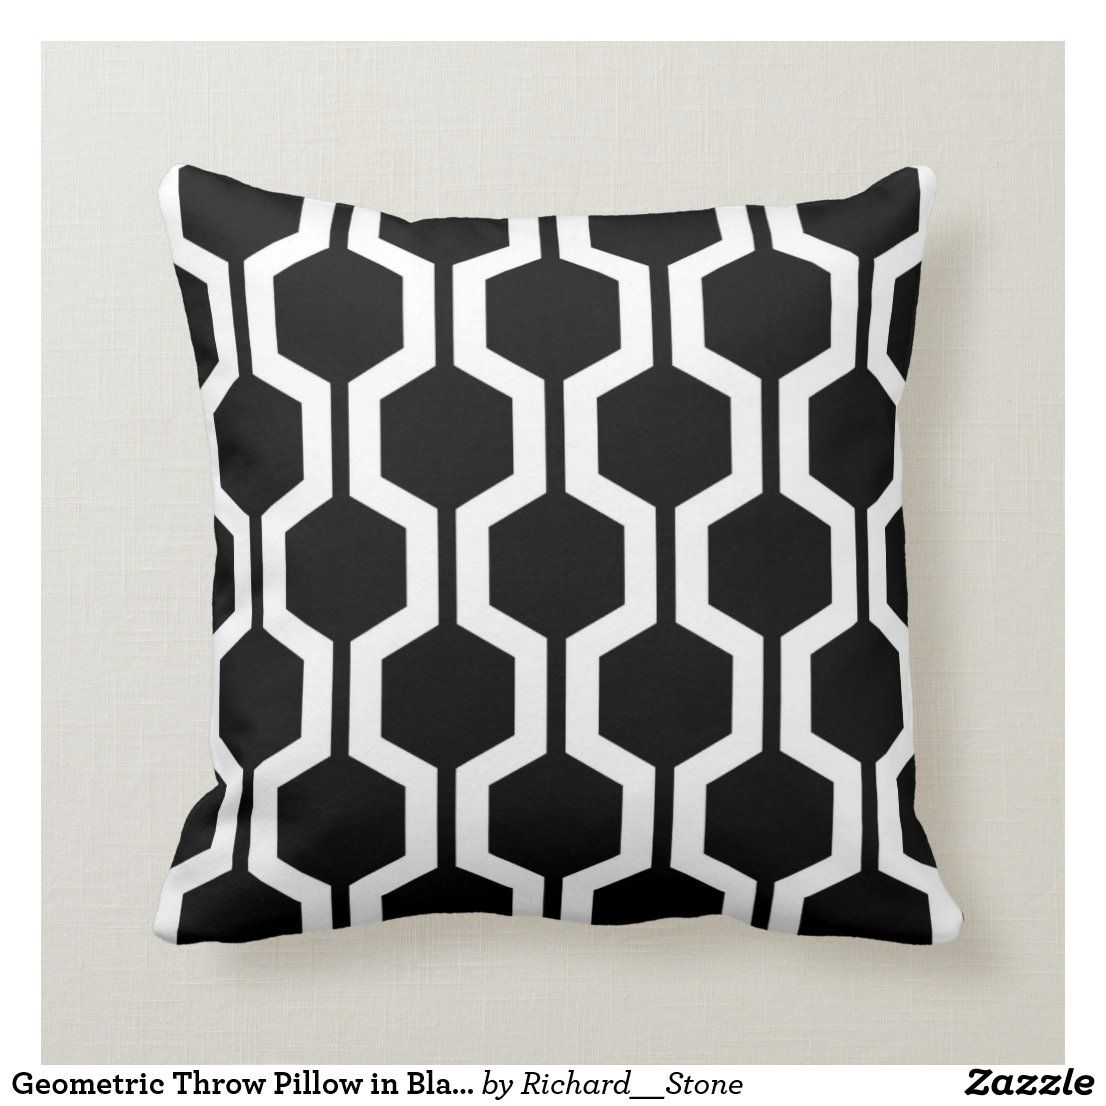 Geometric Throw Pillow In Black And White Zazzle Com Geometric Throw Pillows Black And White Cushions Pillows